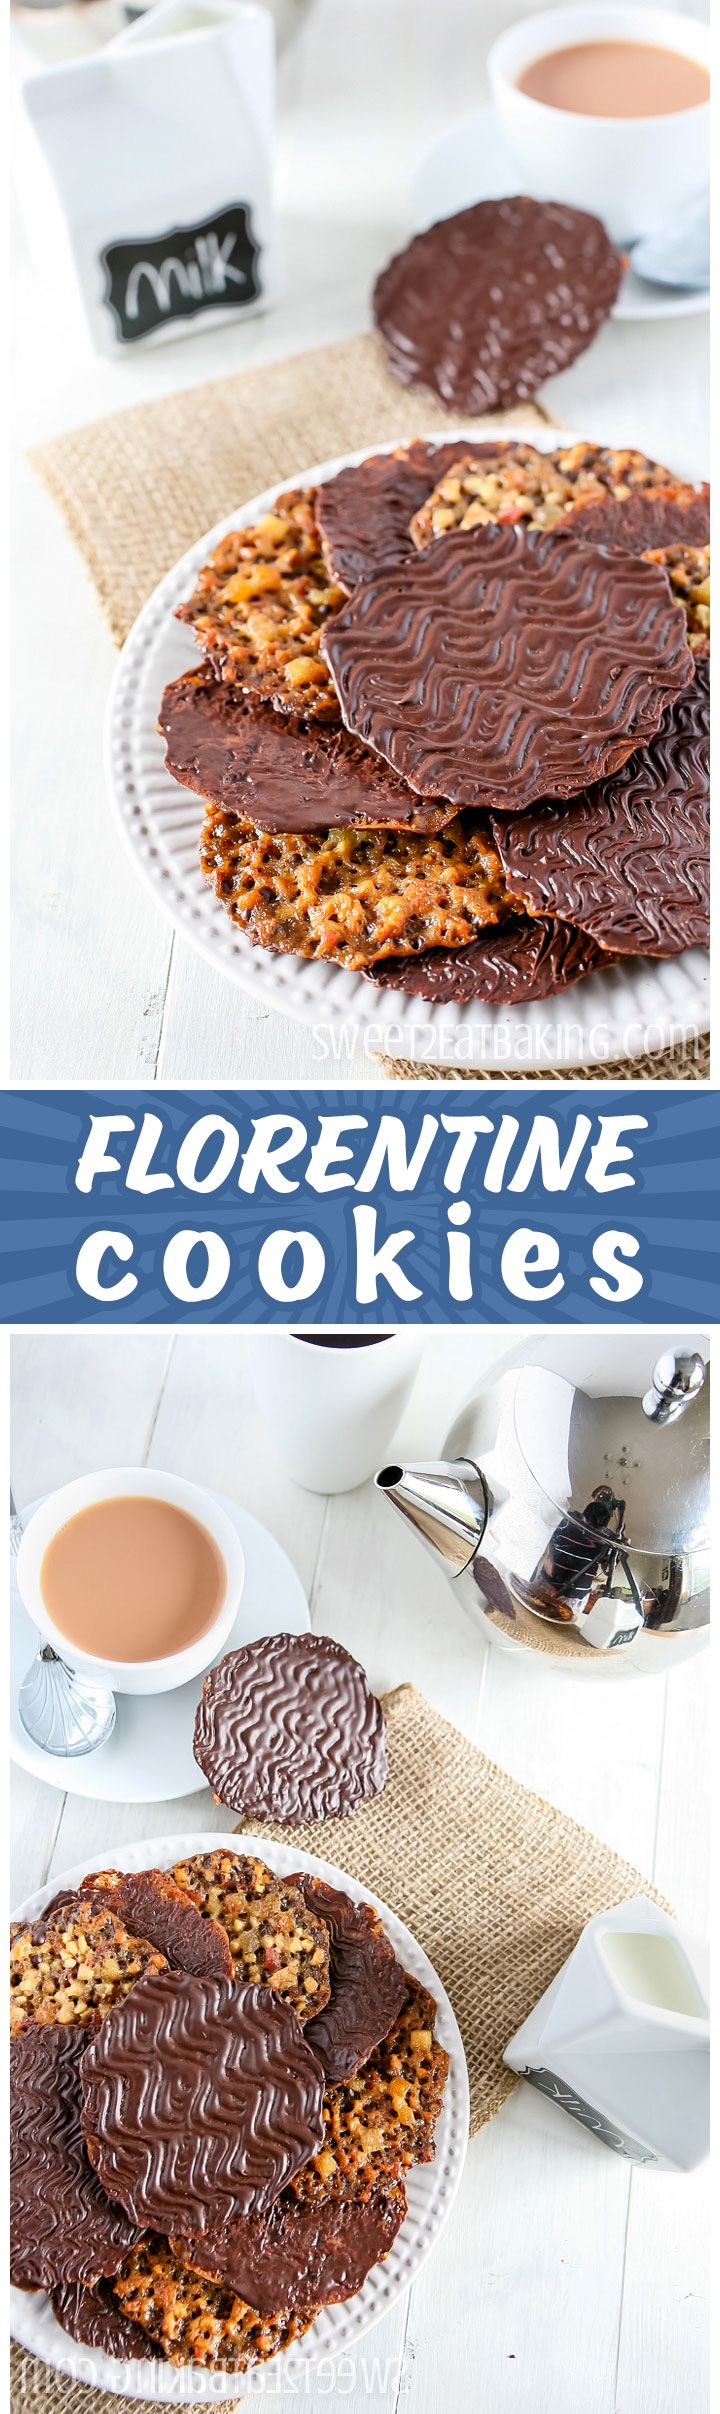 Florentines Cookie Recipe by Sweet2EatBaking.com | These Florentine cookies are a disc of caramel with glacé cherries, candied peel, toasted almonds, hazelnuts Topped off with a generous coating of rich dark chocolate. Little pretty discs of edible lace. :)